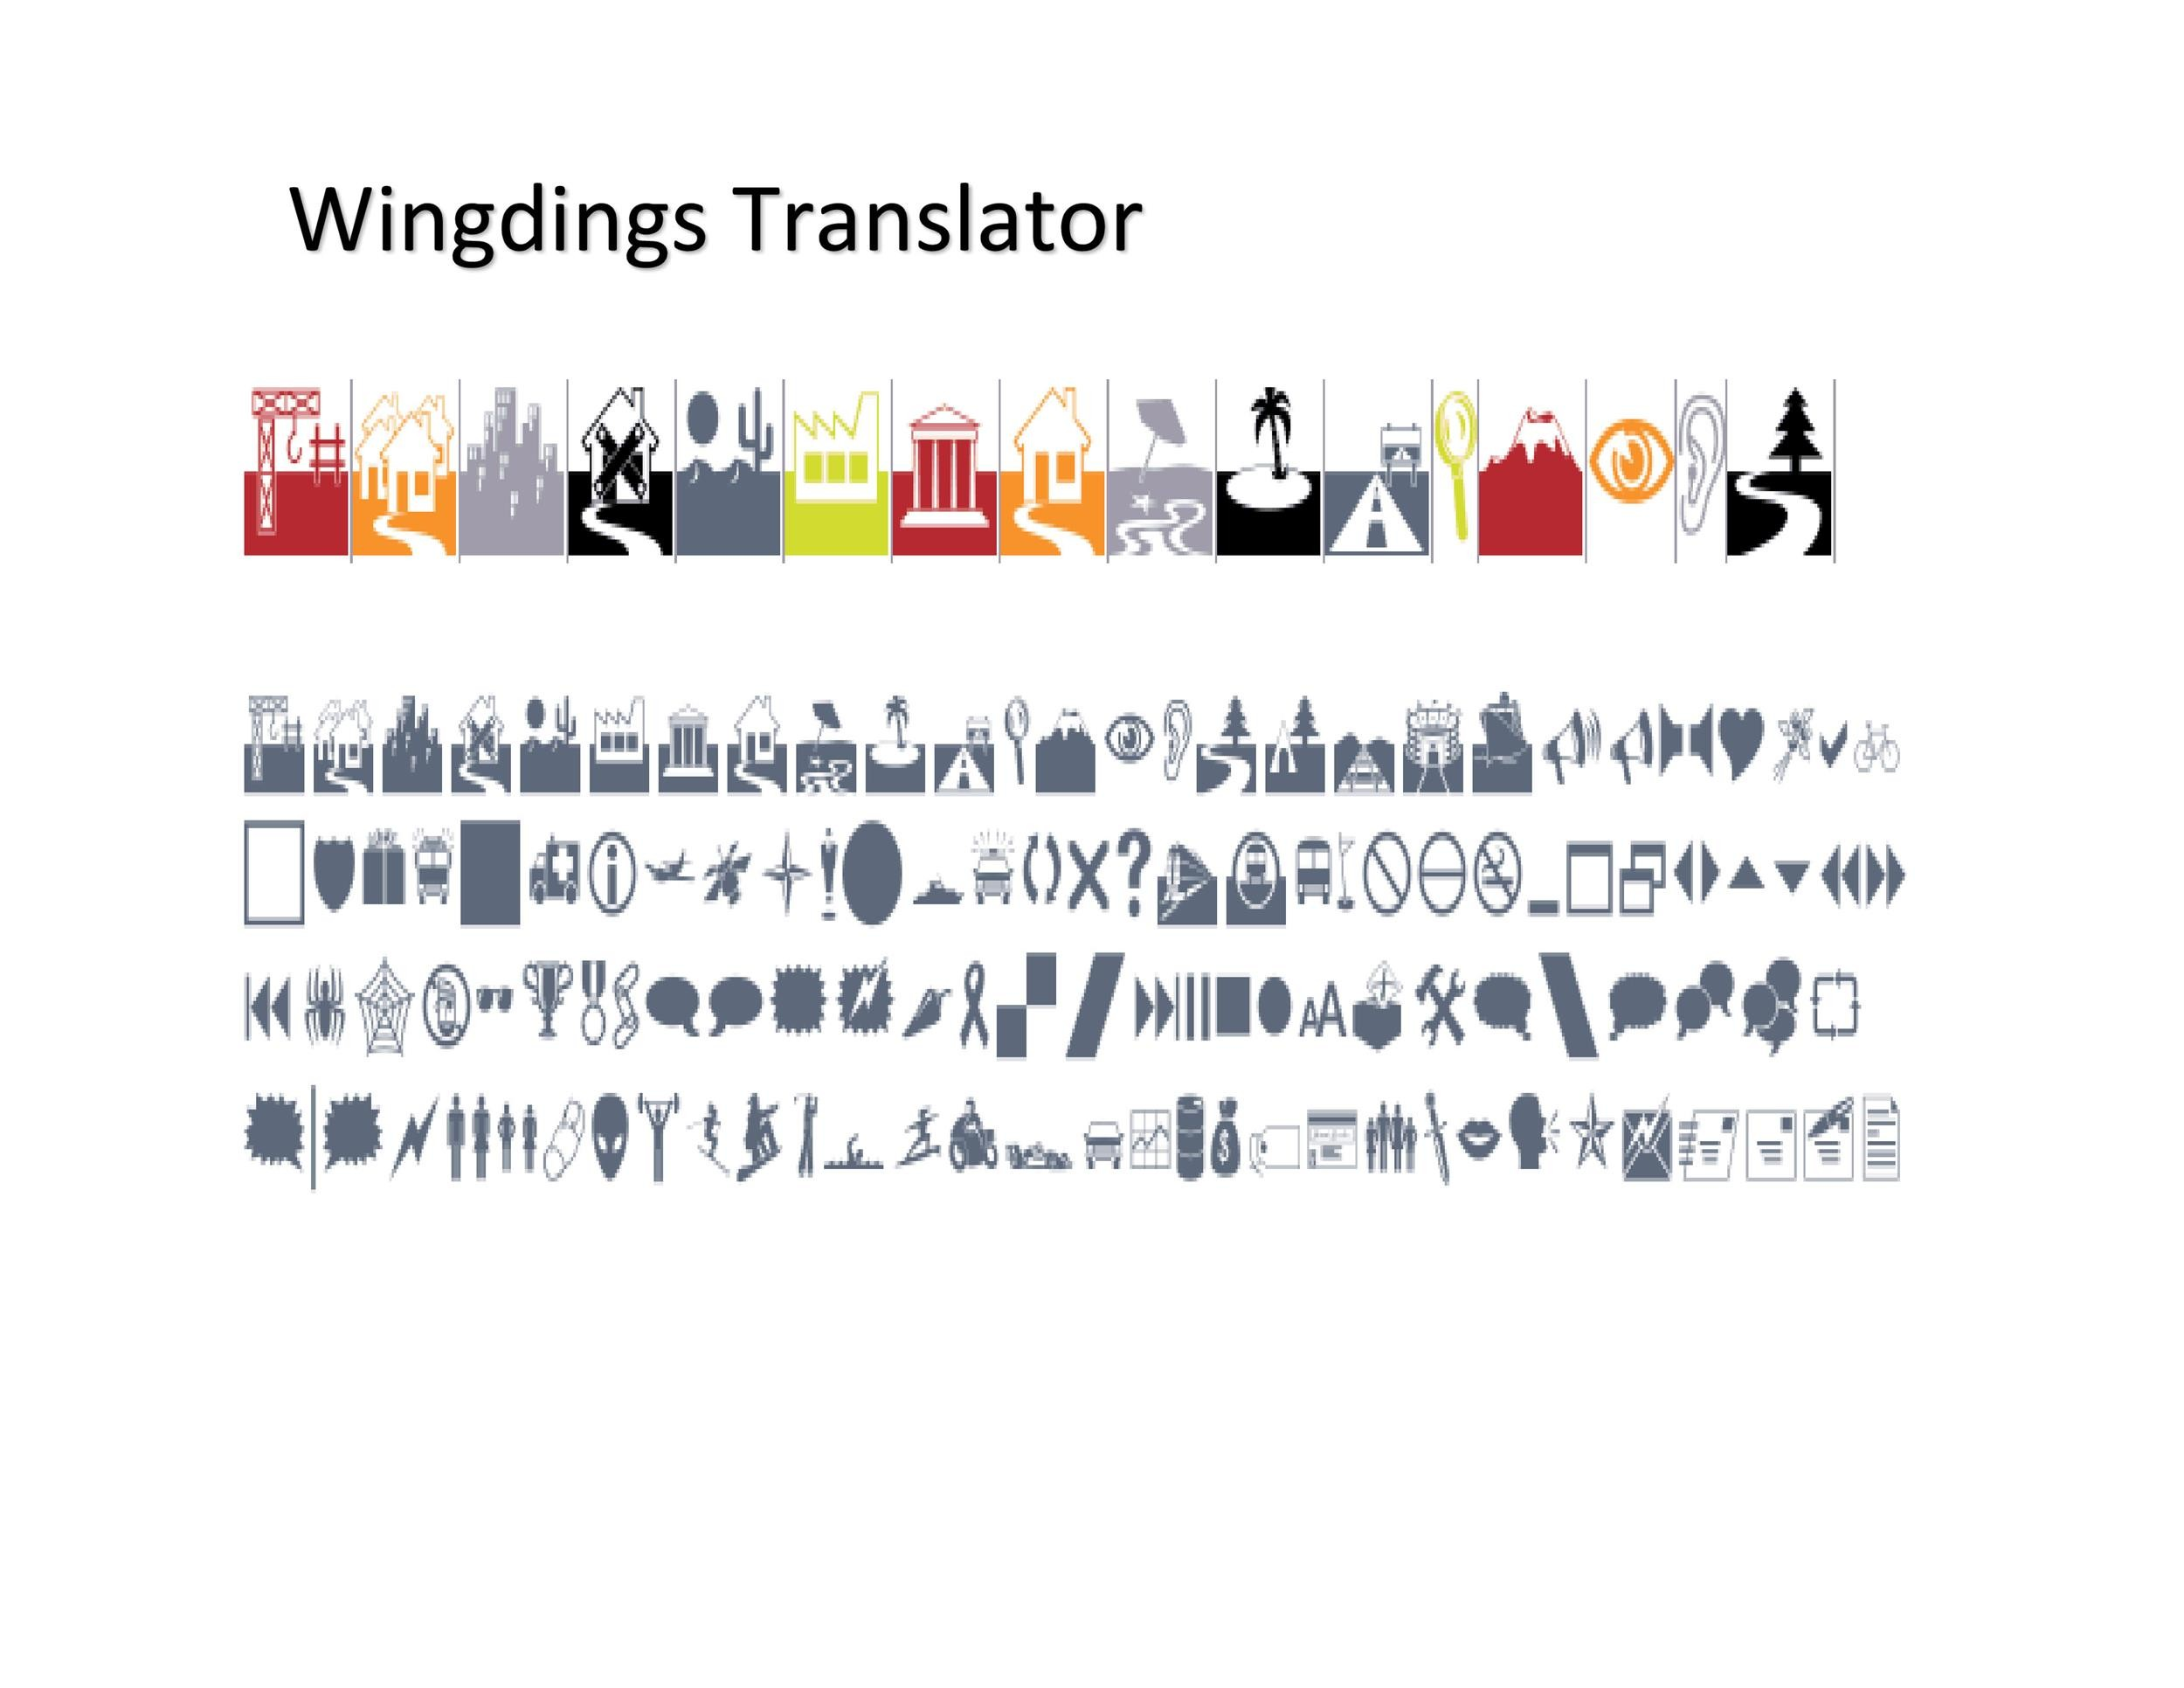 Free wingdings translator template 18